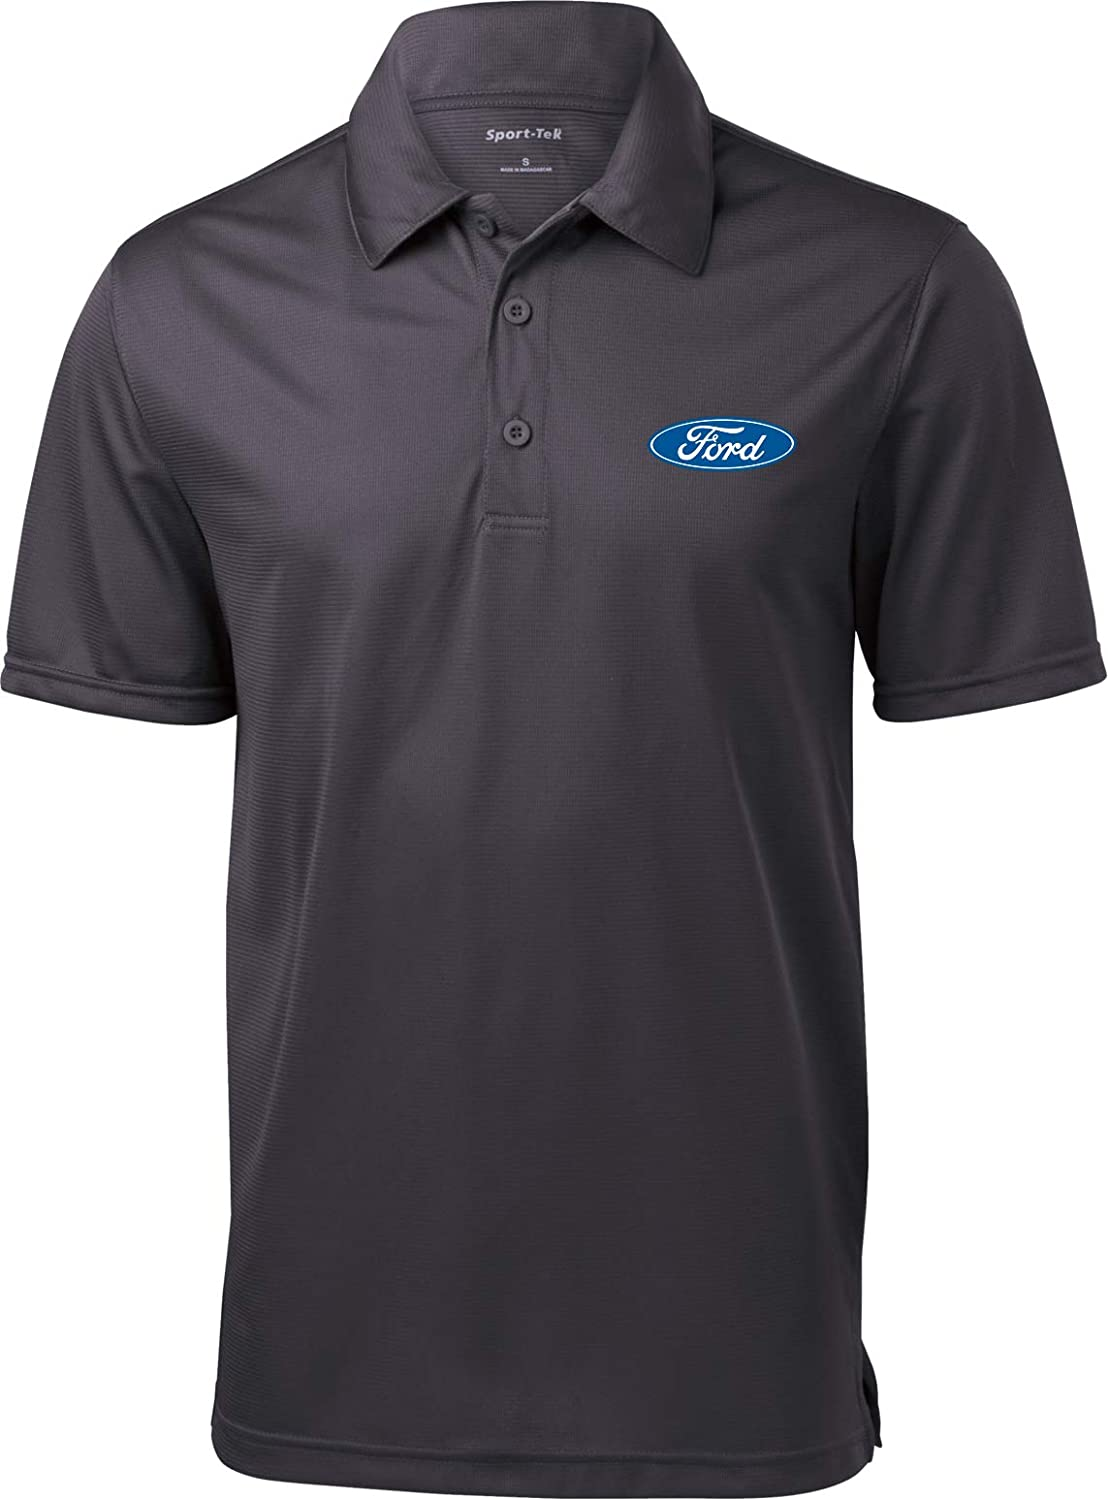 Free Shipping Cheap Bargain Gift Ford Oval 55% OFF Textured Pocket Print Polo